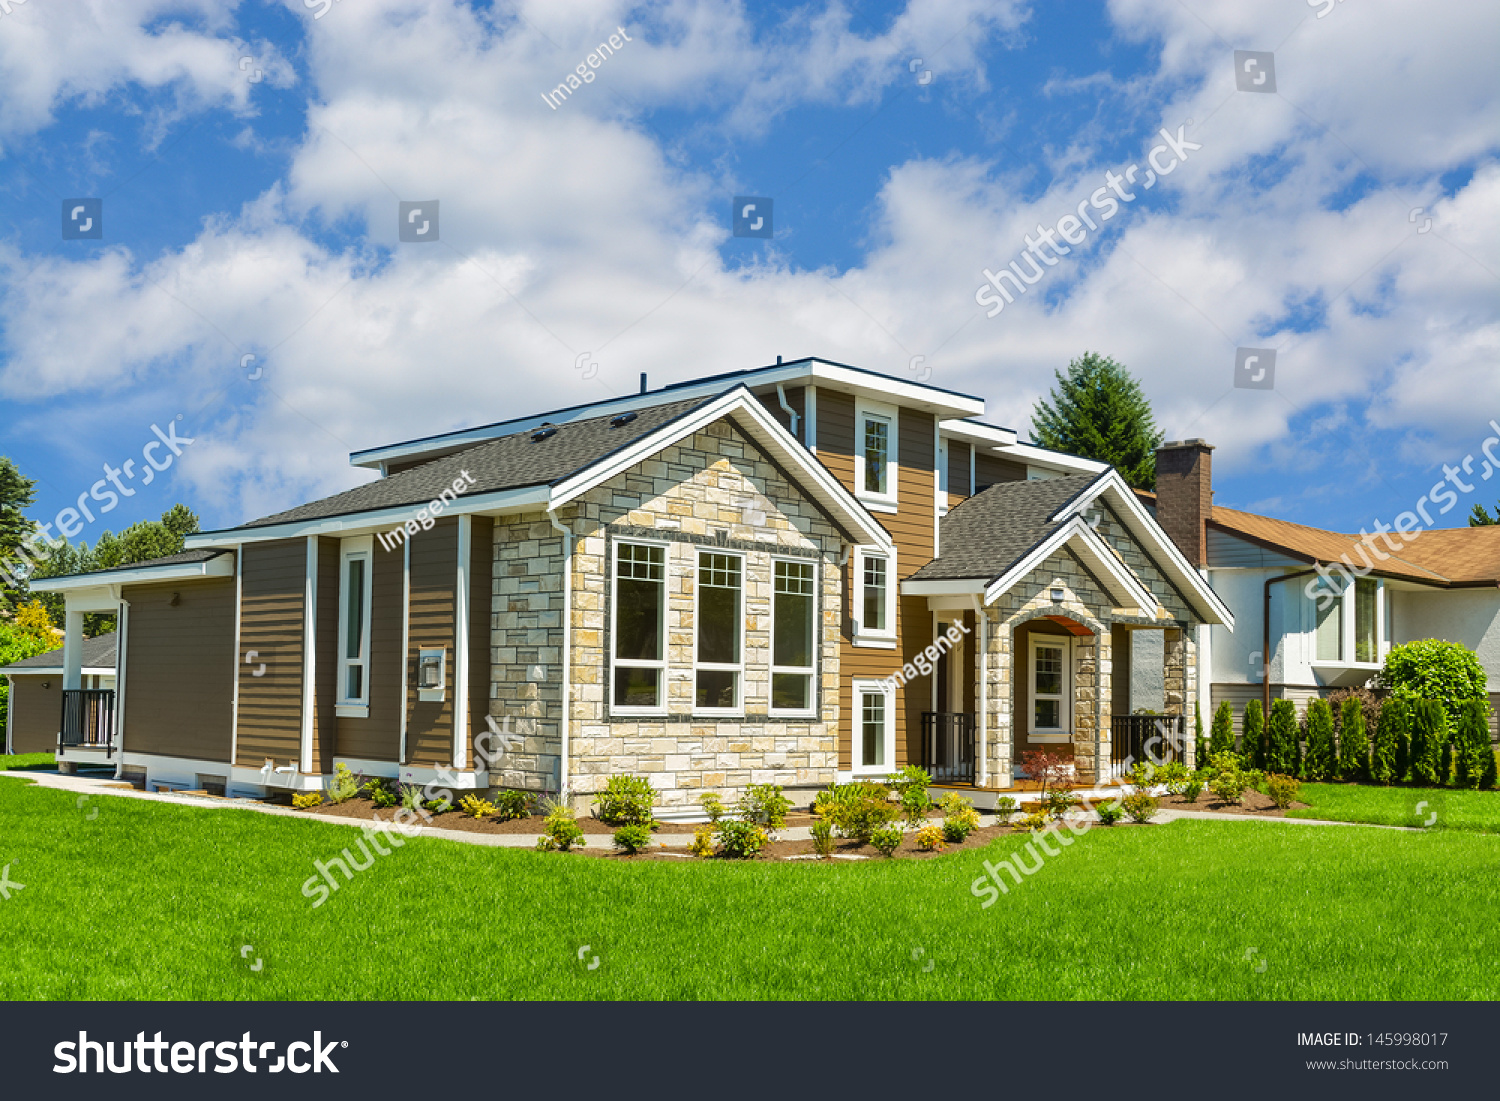 Brand new house big luxury house with nicely trimmed and for New house big